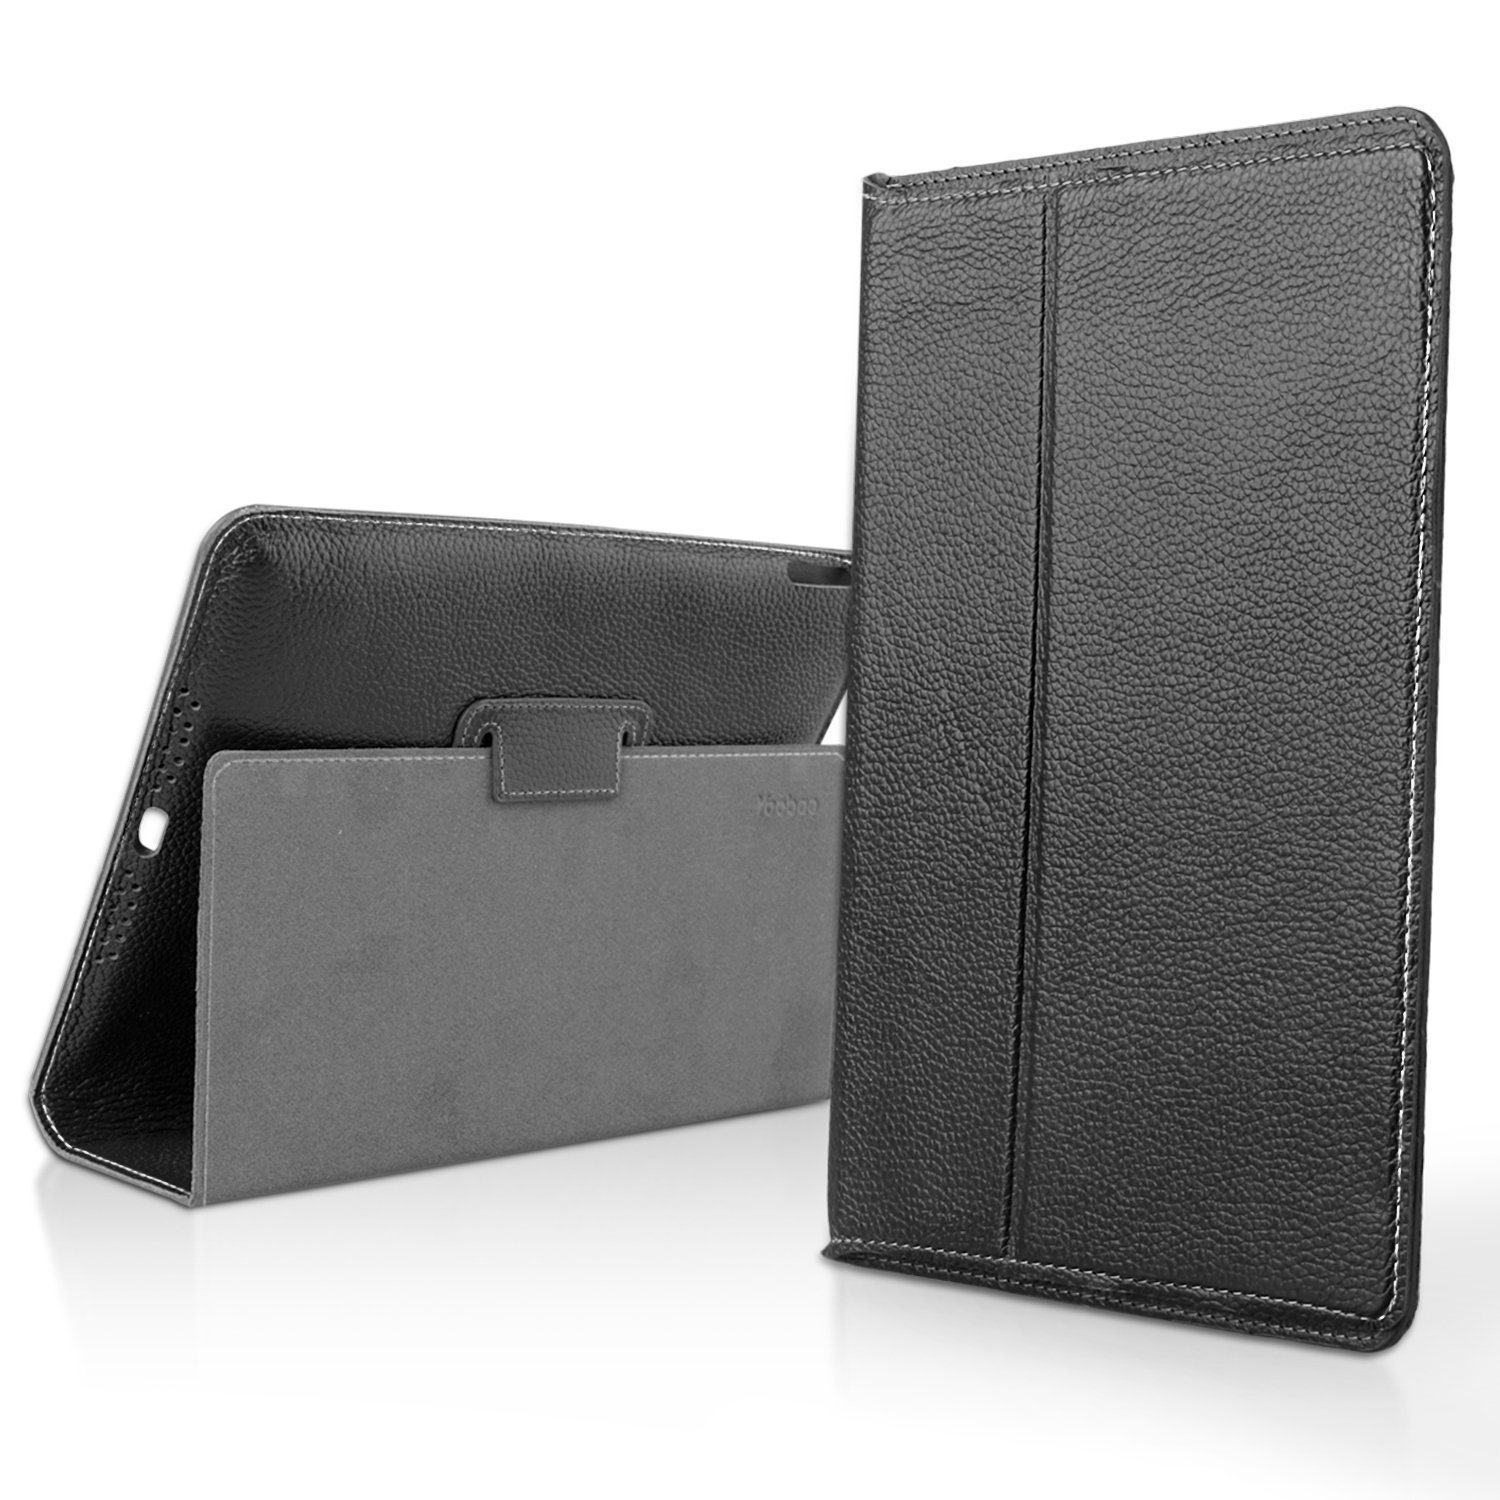 Yoobao Executive Smart Cover iPad Air 2